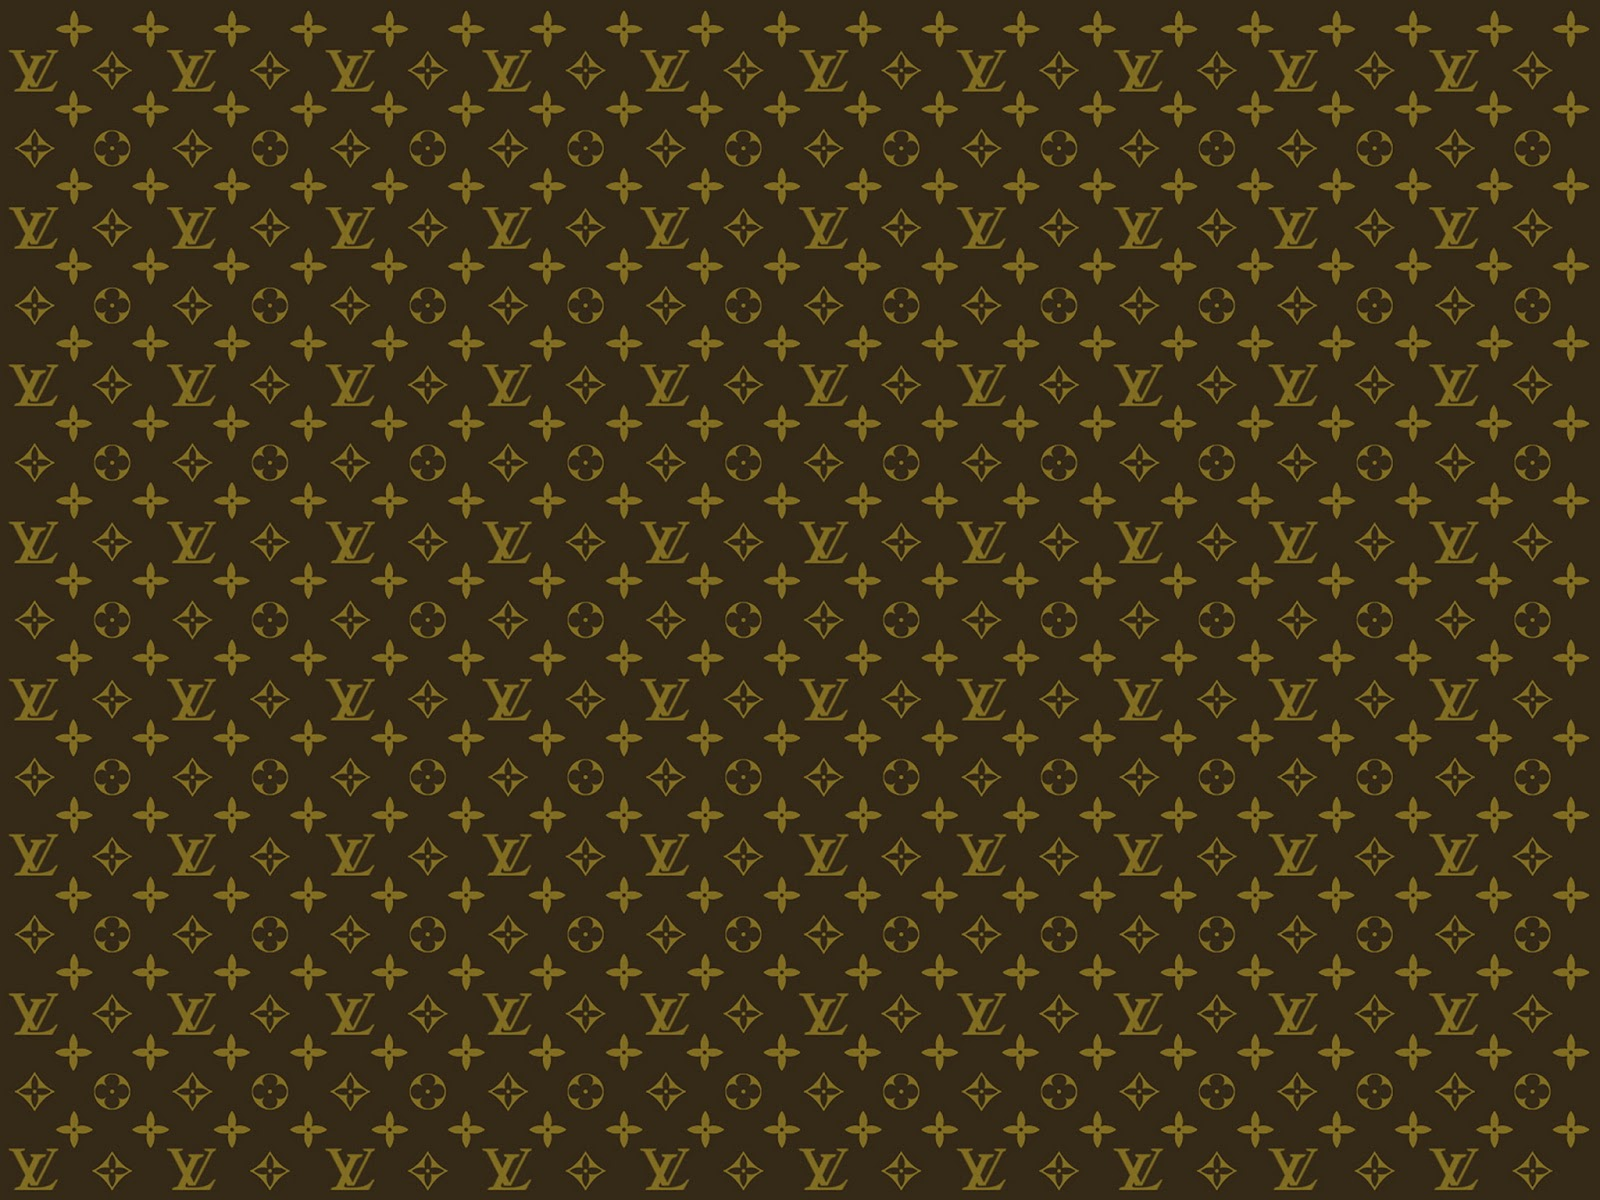 Free Retina Ipad Wallpaper: Louis Vuitton New IPad 3 Wallpapers